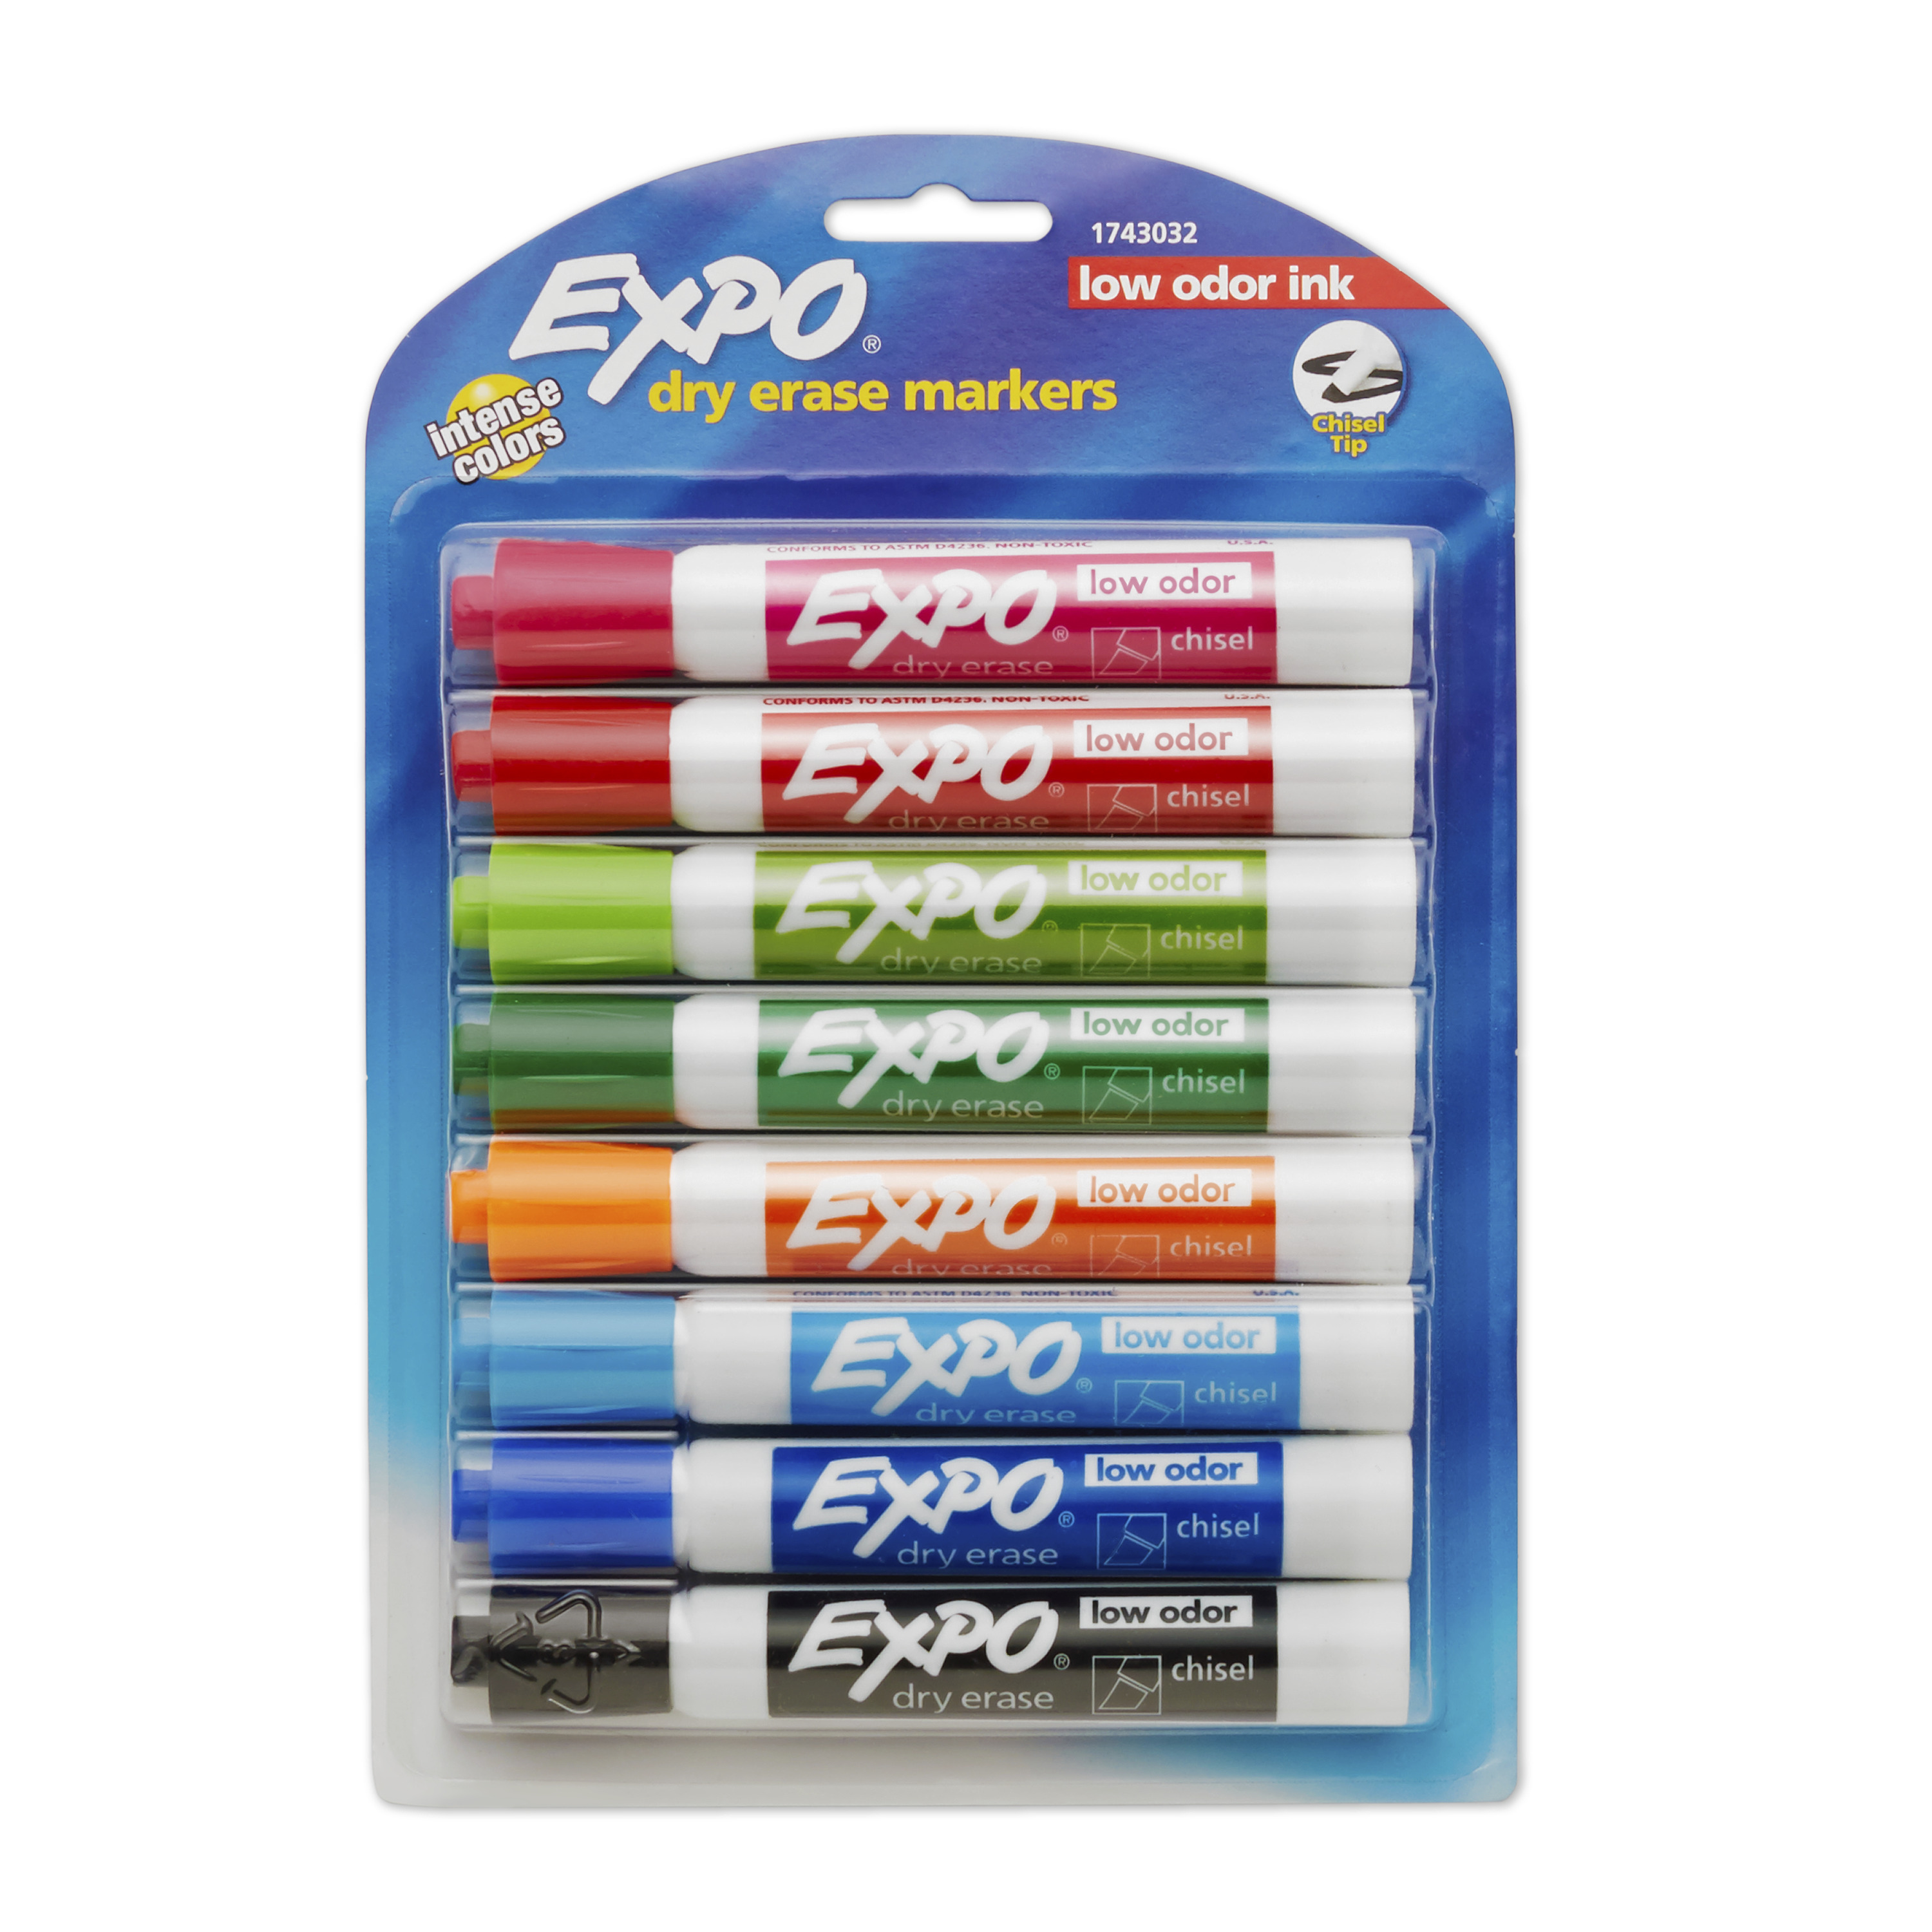 EXPO Low Odor Dry Erase Markers, Chisel Tip, Assorted Colors, 8 Pack